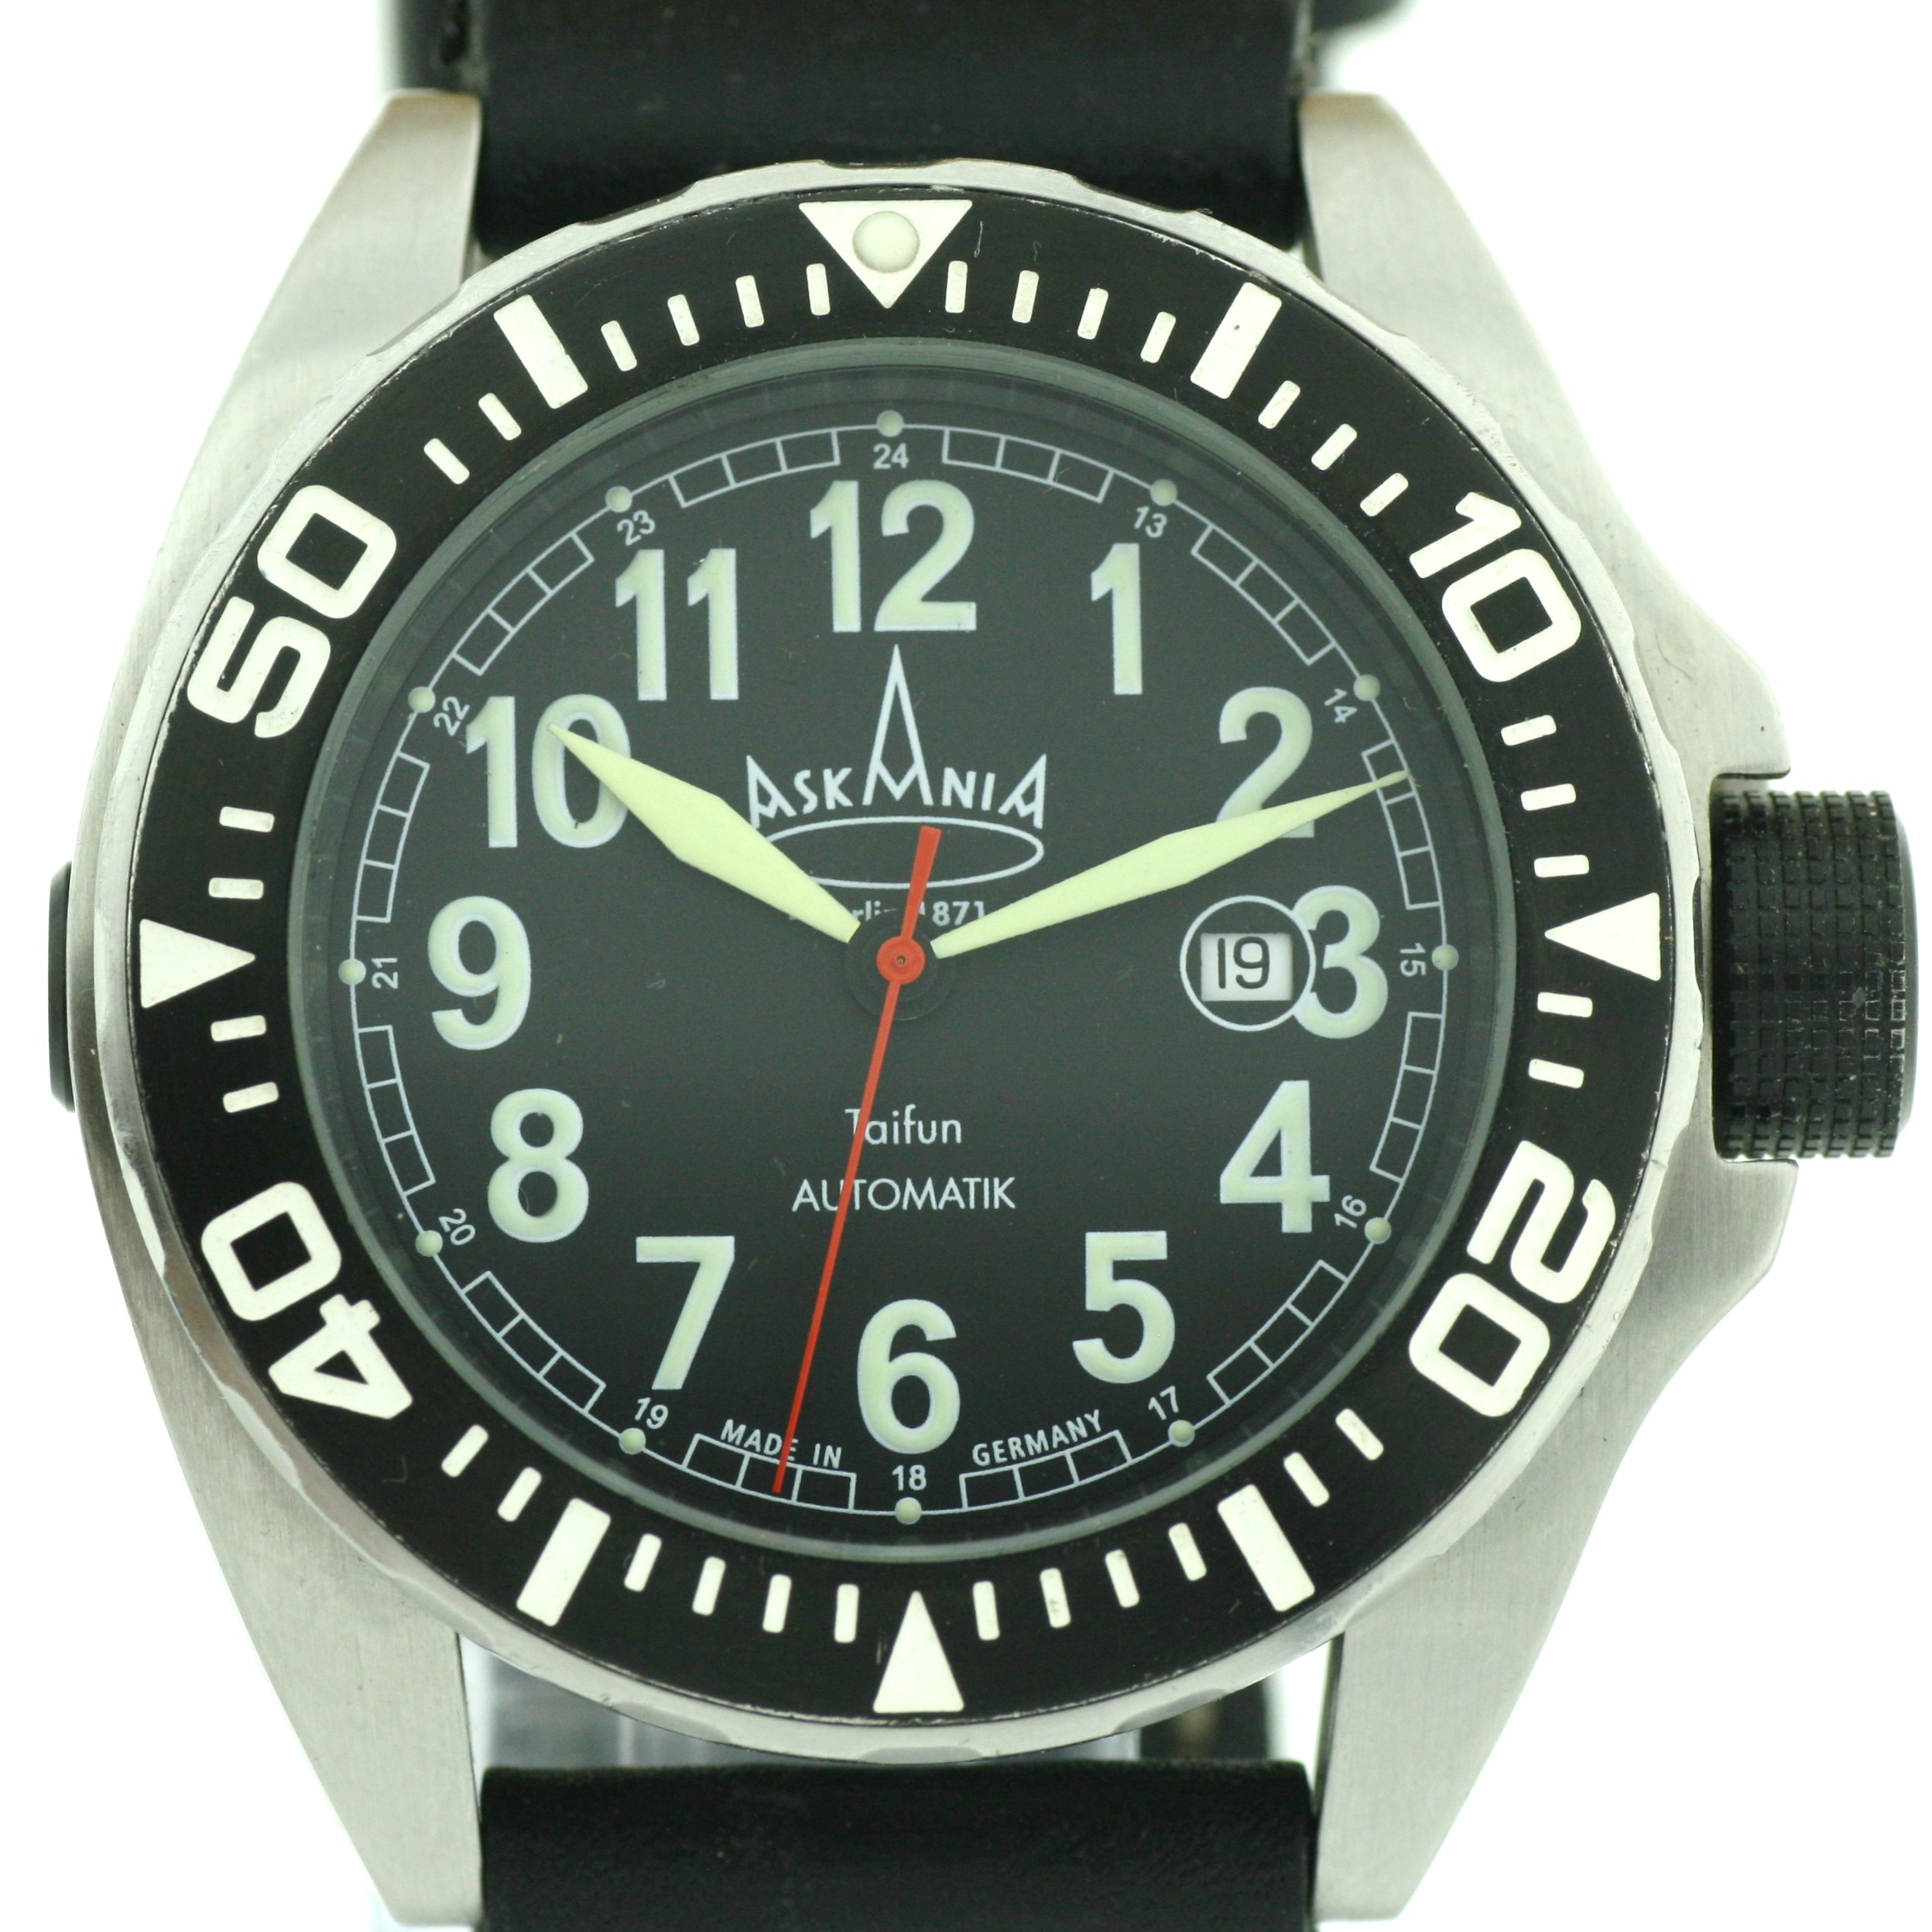 theminutehand steel watches canteen img review tw